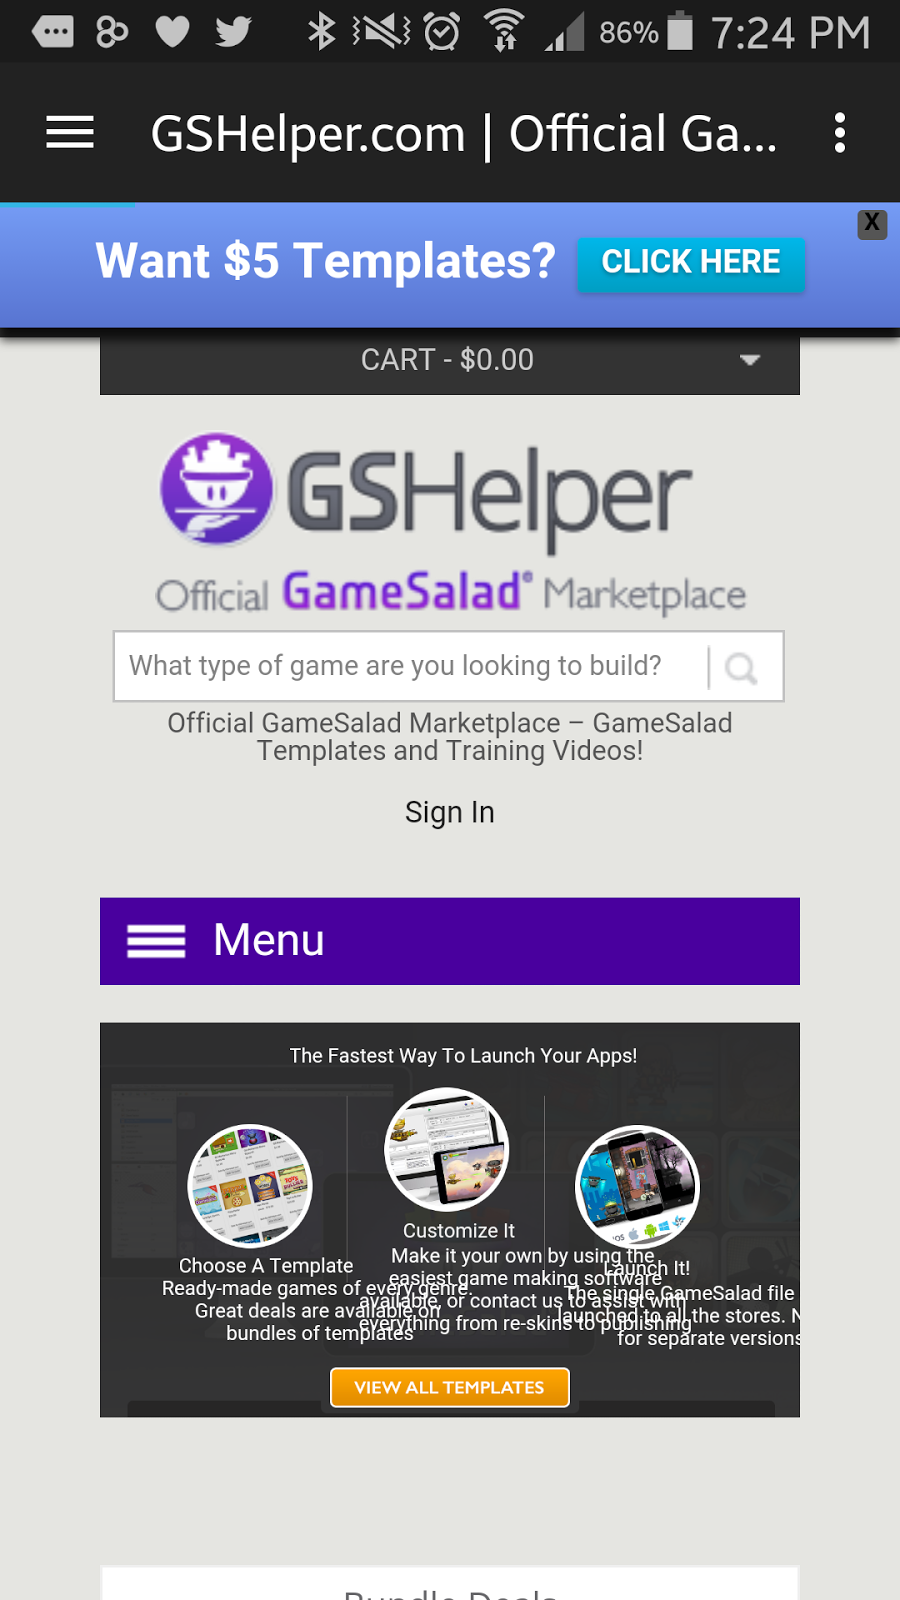 app developer tools for gamesalad reg welcome to the my most used gamesaladreg services into a simple app so i can access gshelper com and other stuff on the gamesaladreg homepage on my smartphone through an